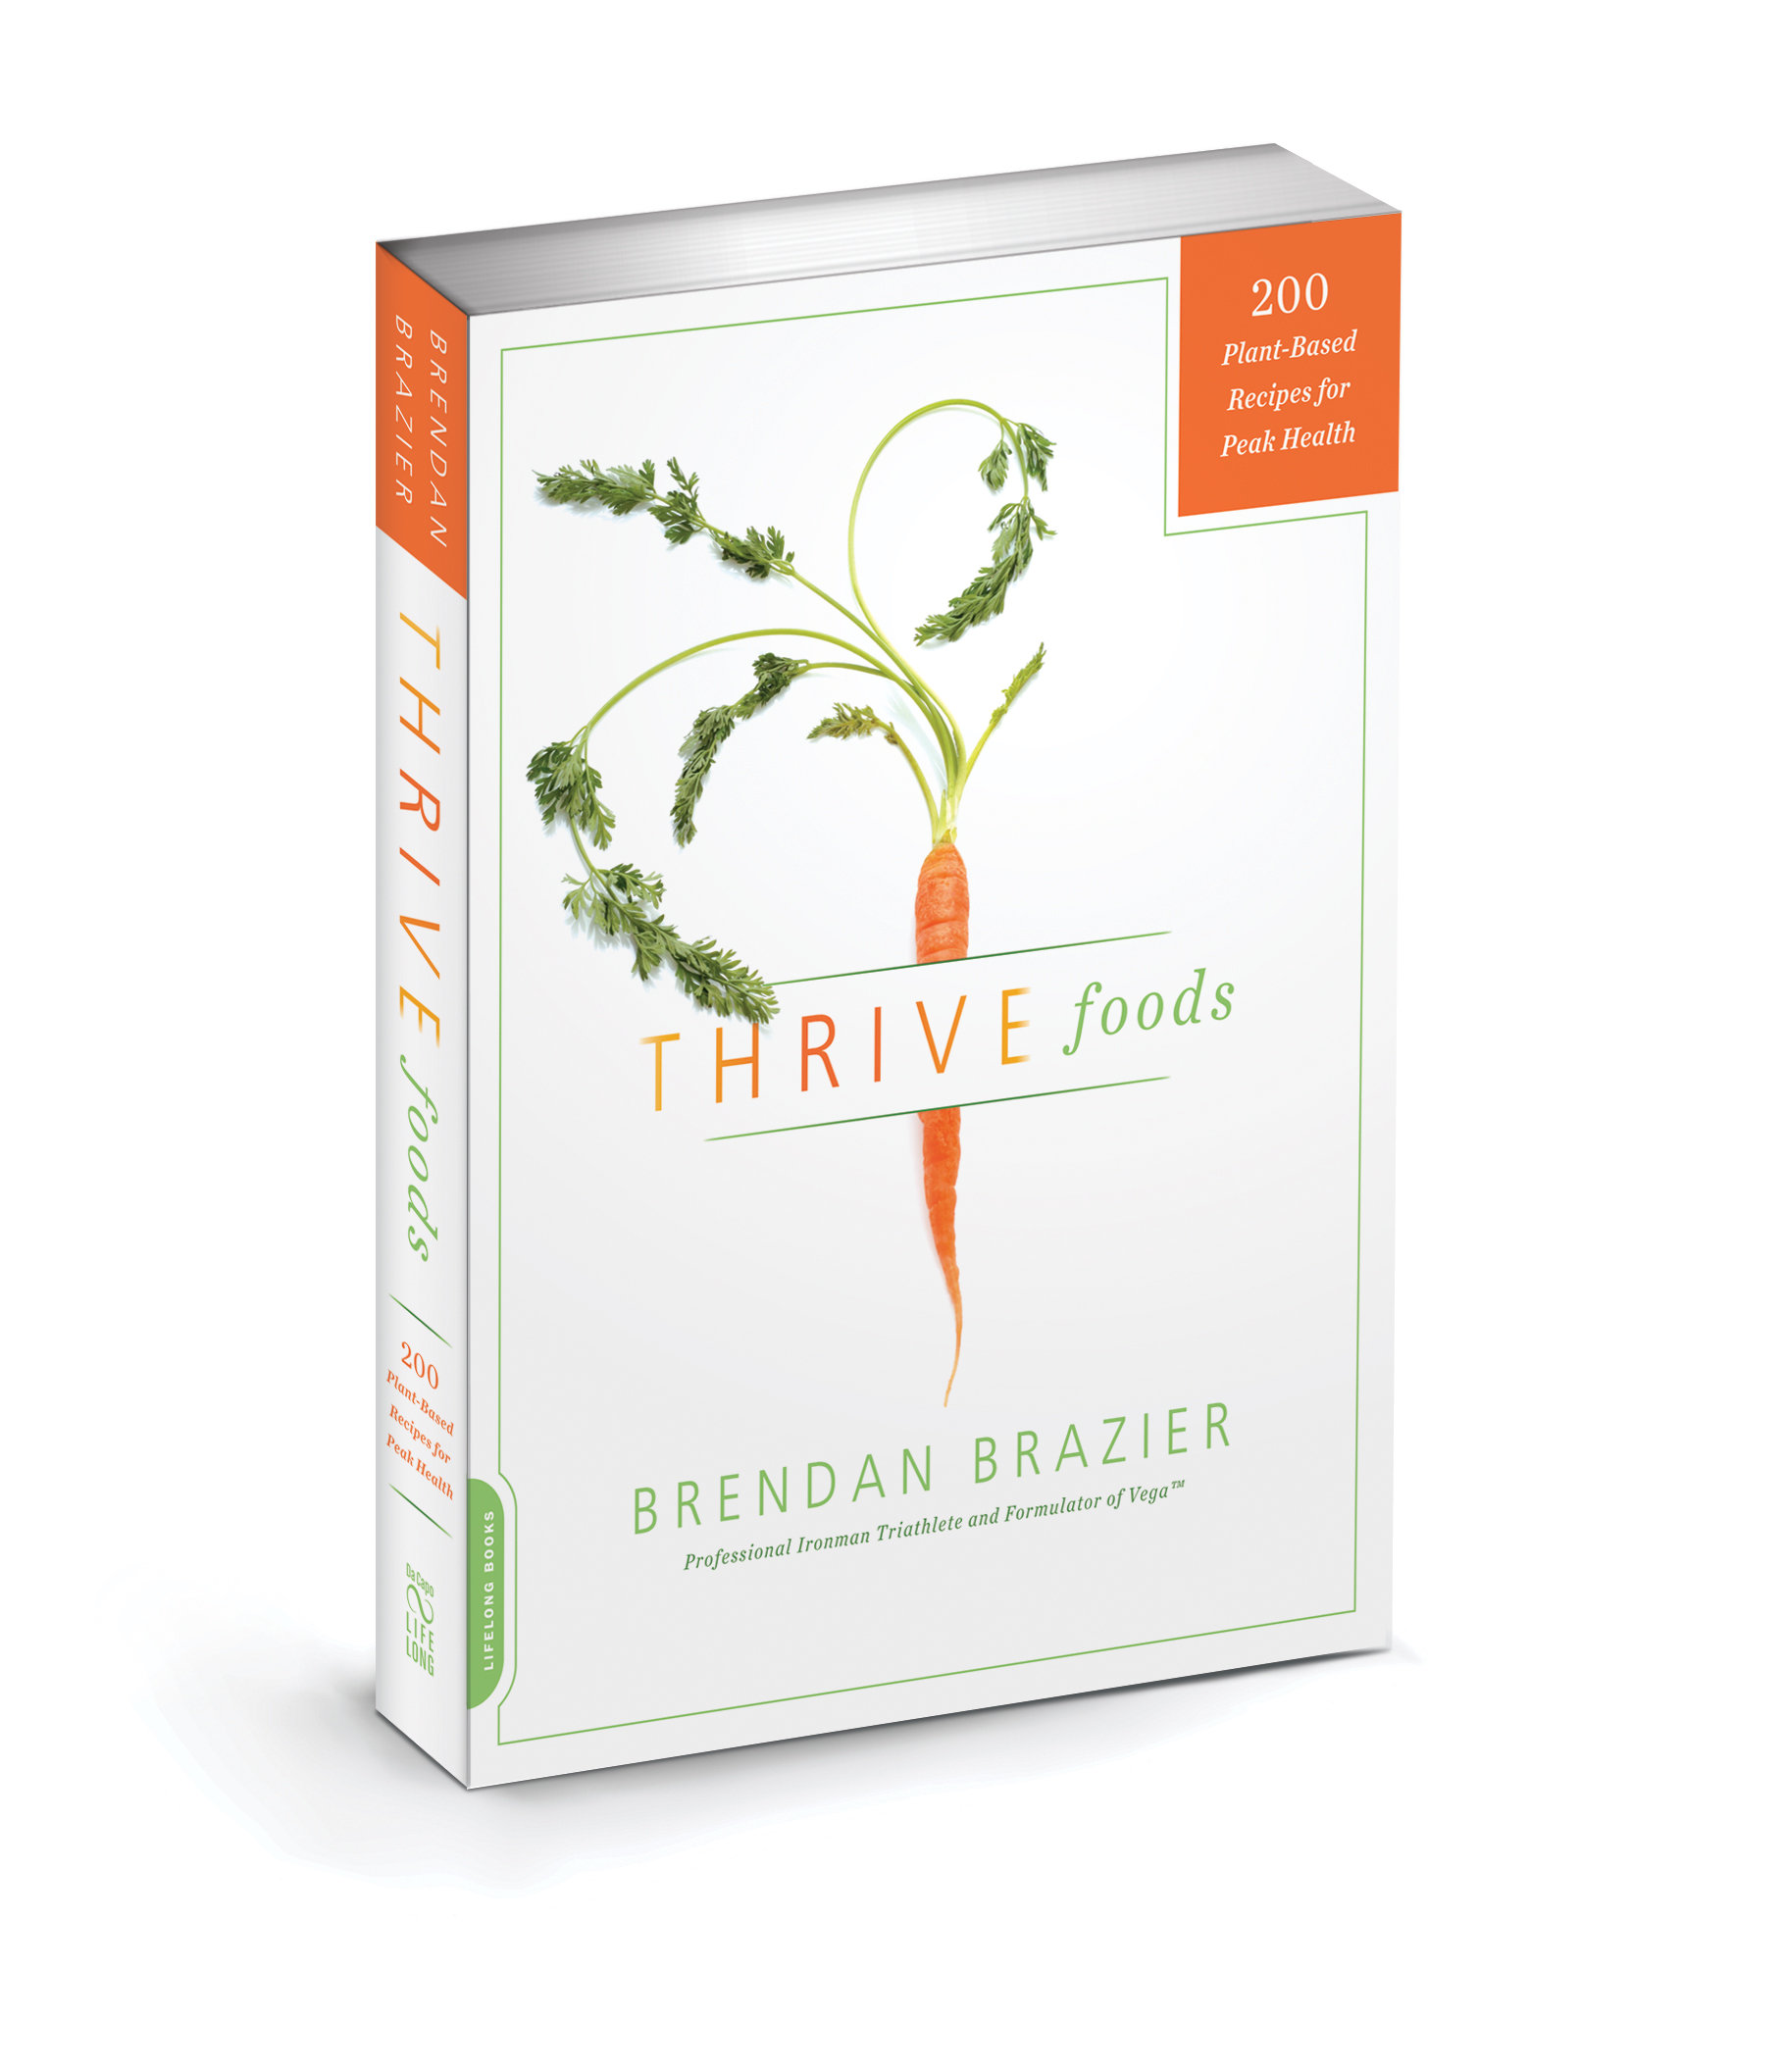 Food Book Cover : Thrive foods plant based recipes for peak health